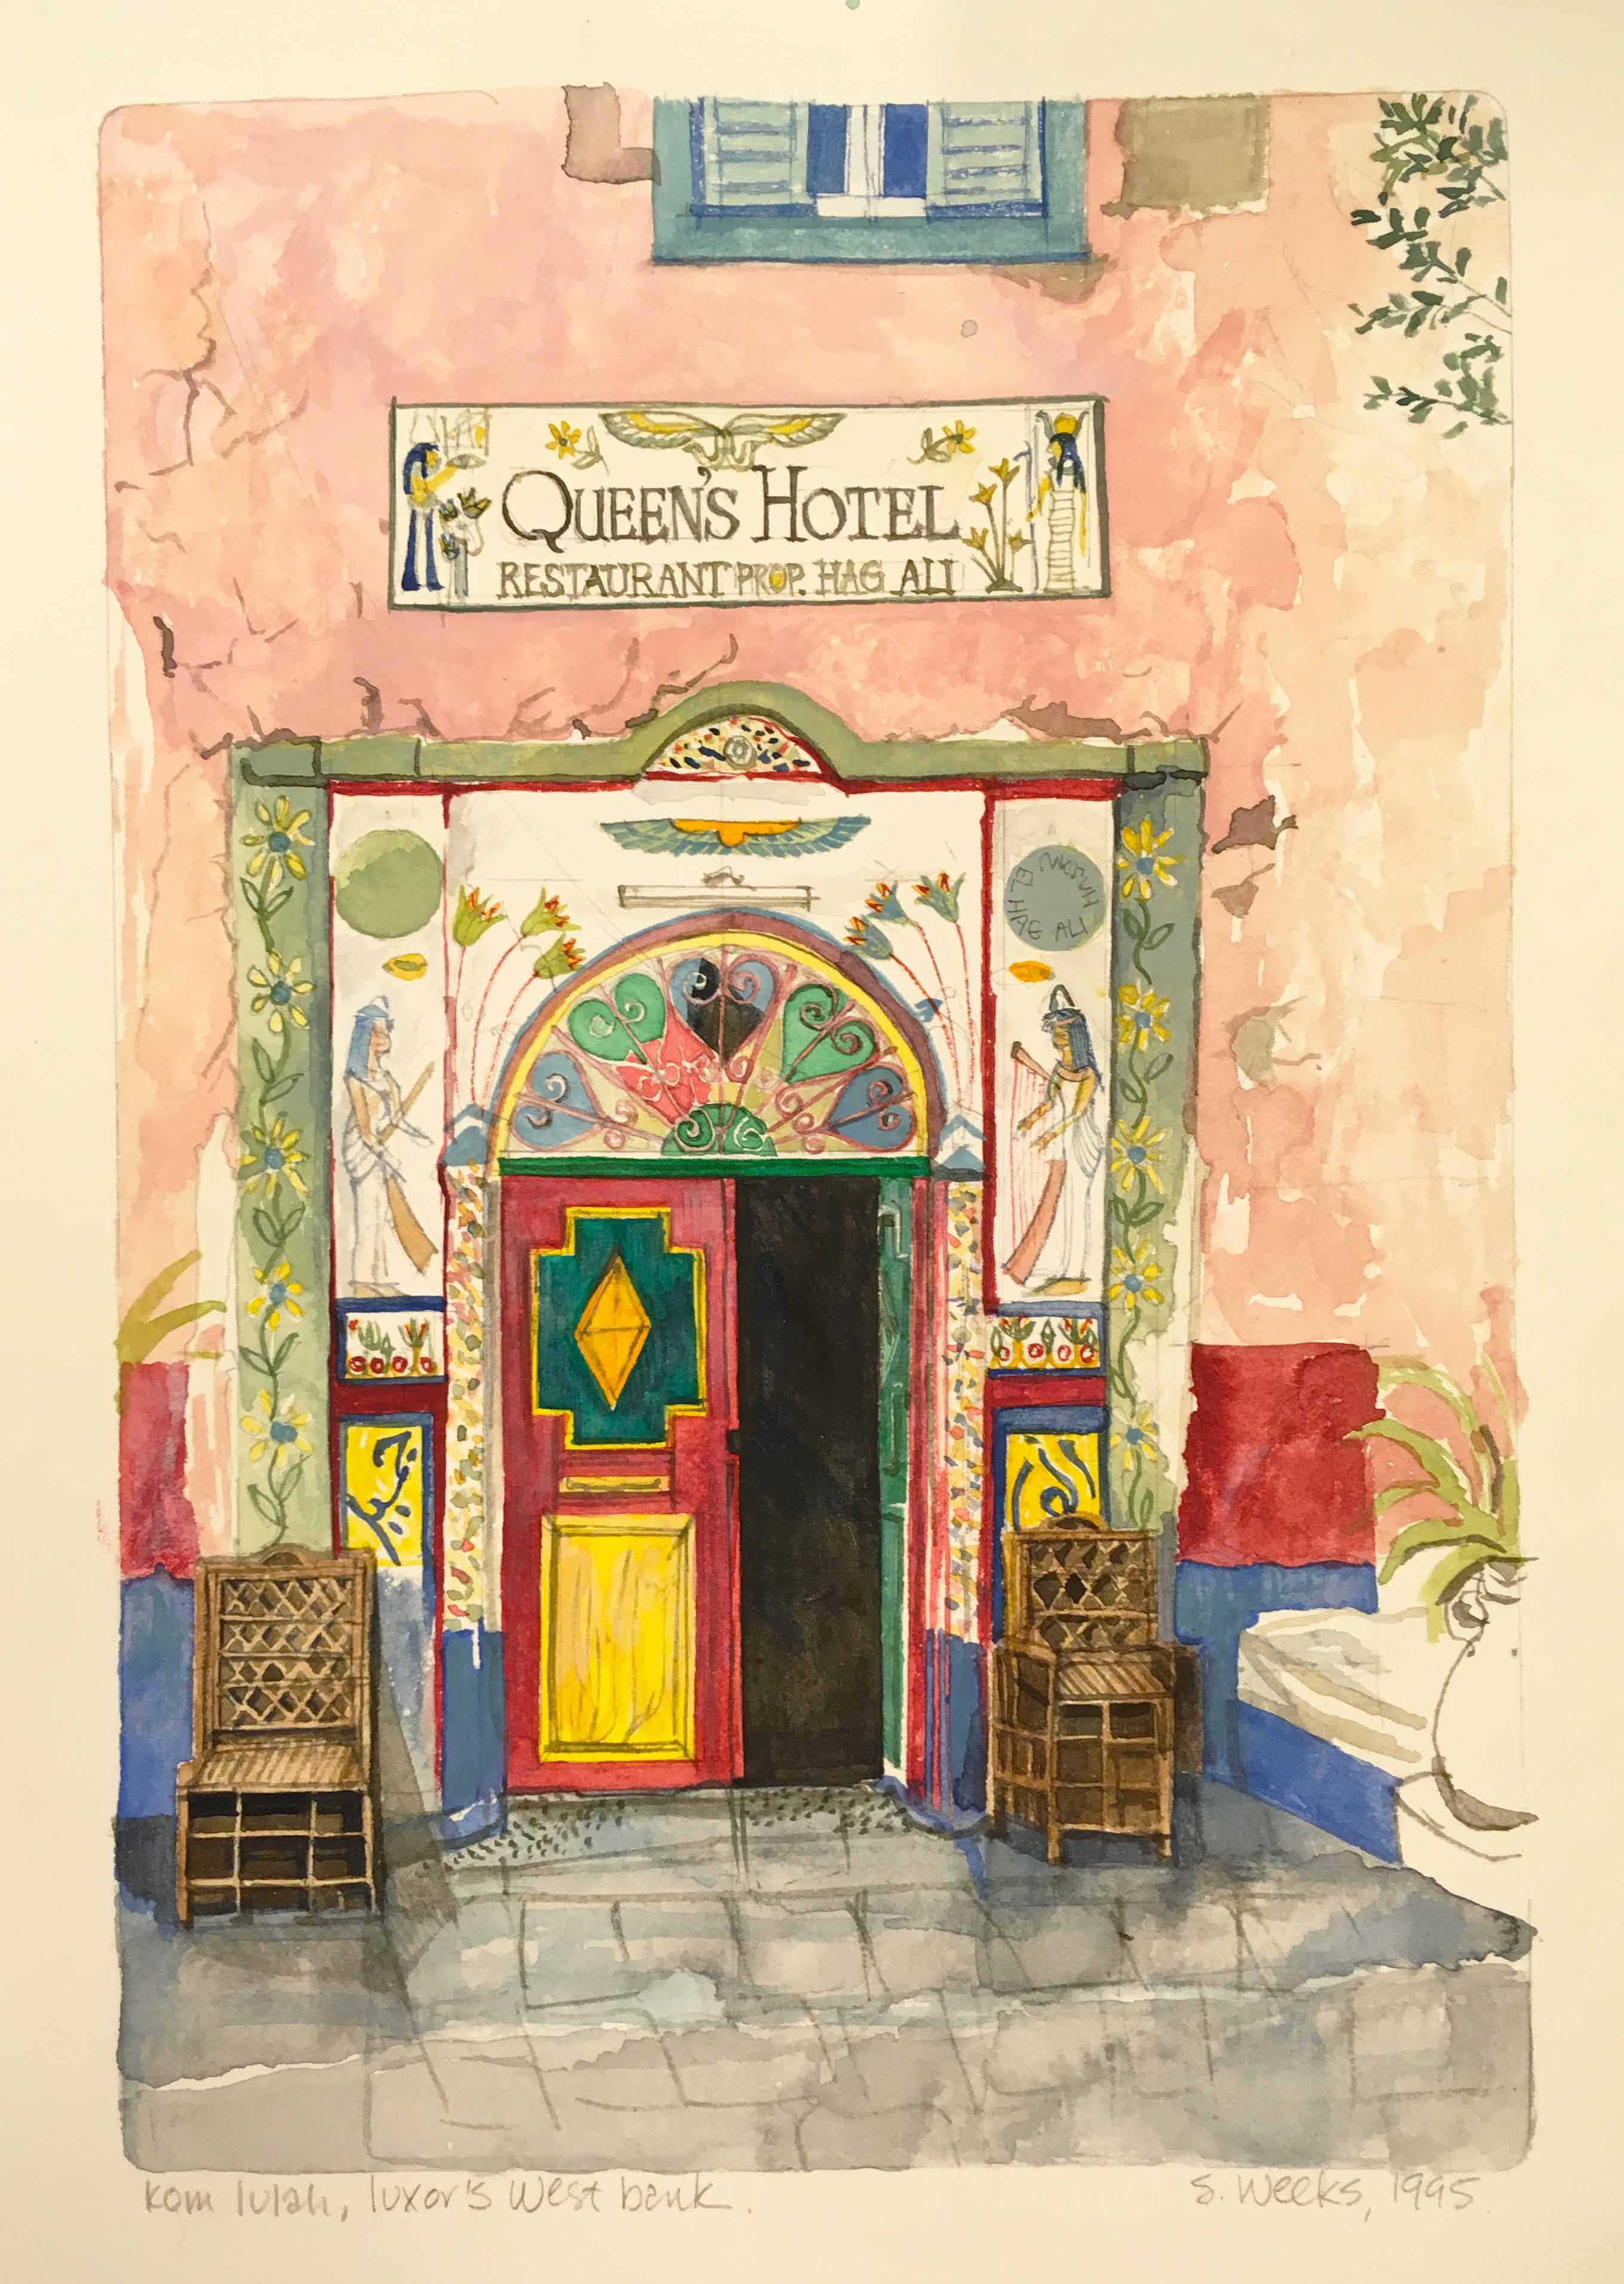 Winter Palace Egypt In The Golden Age Of Travel Pensil Alis Shopie Paris Poking Around Archives American University Cairo Other Week I Came Across A Box Labeled Susan Weeks